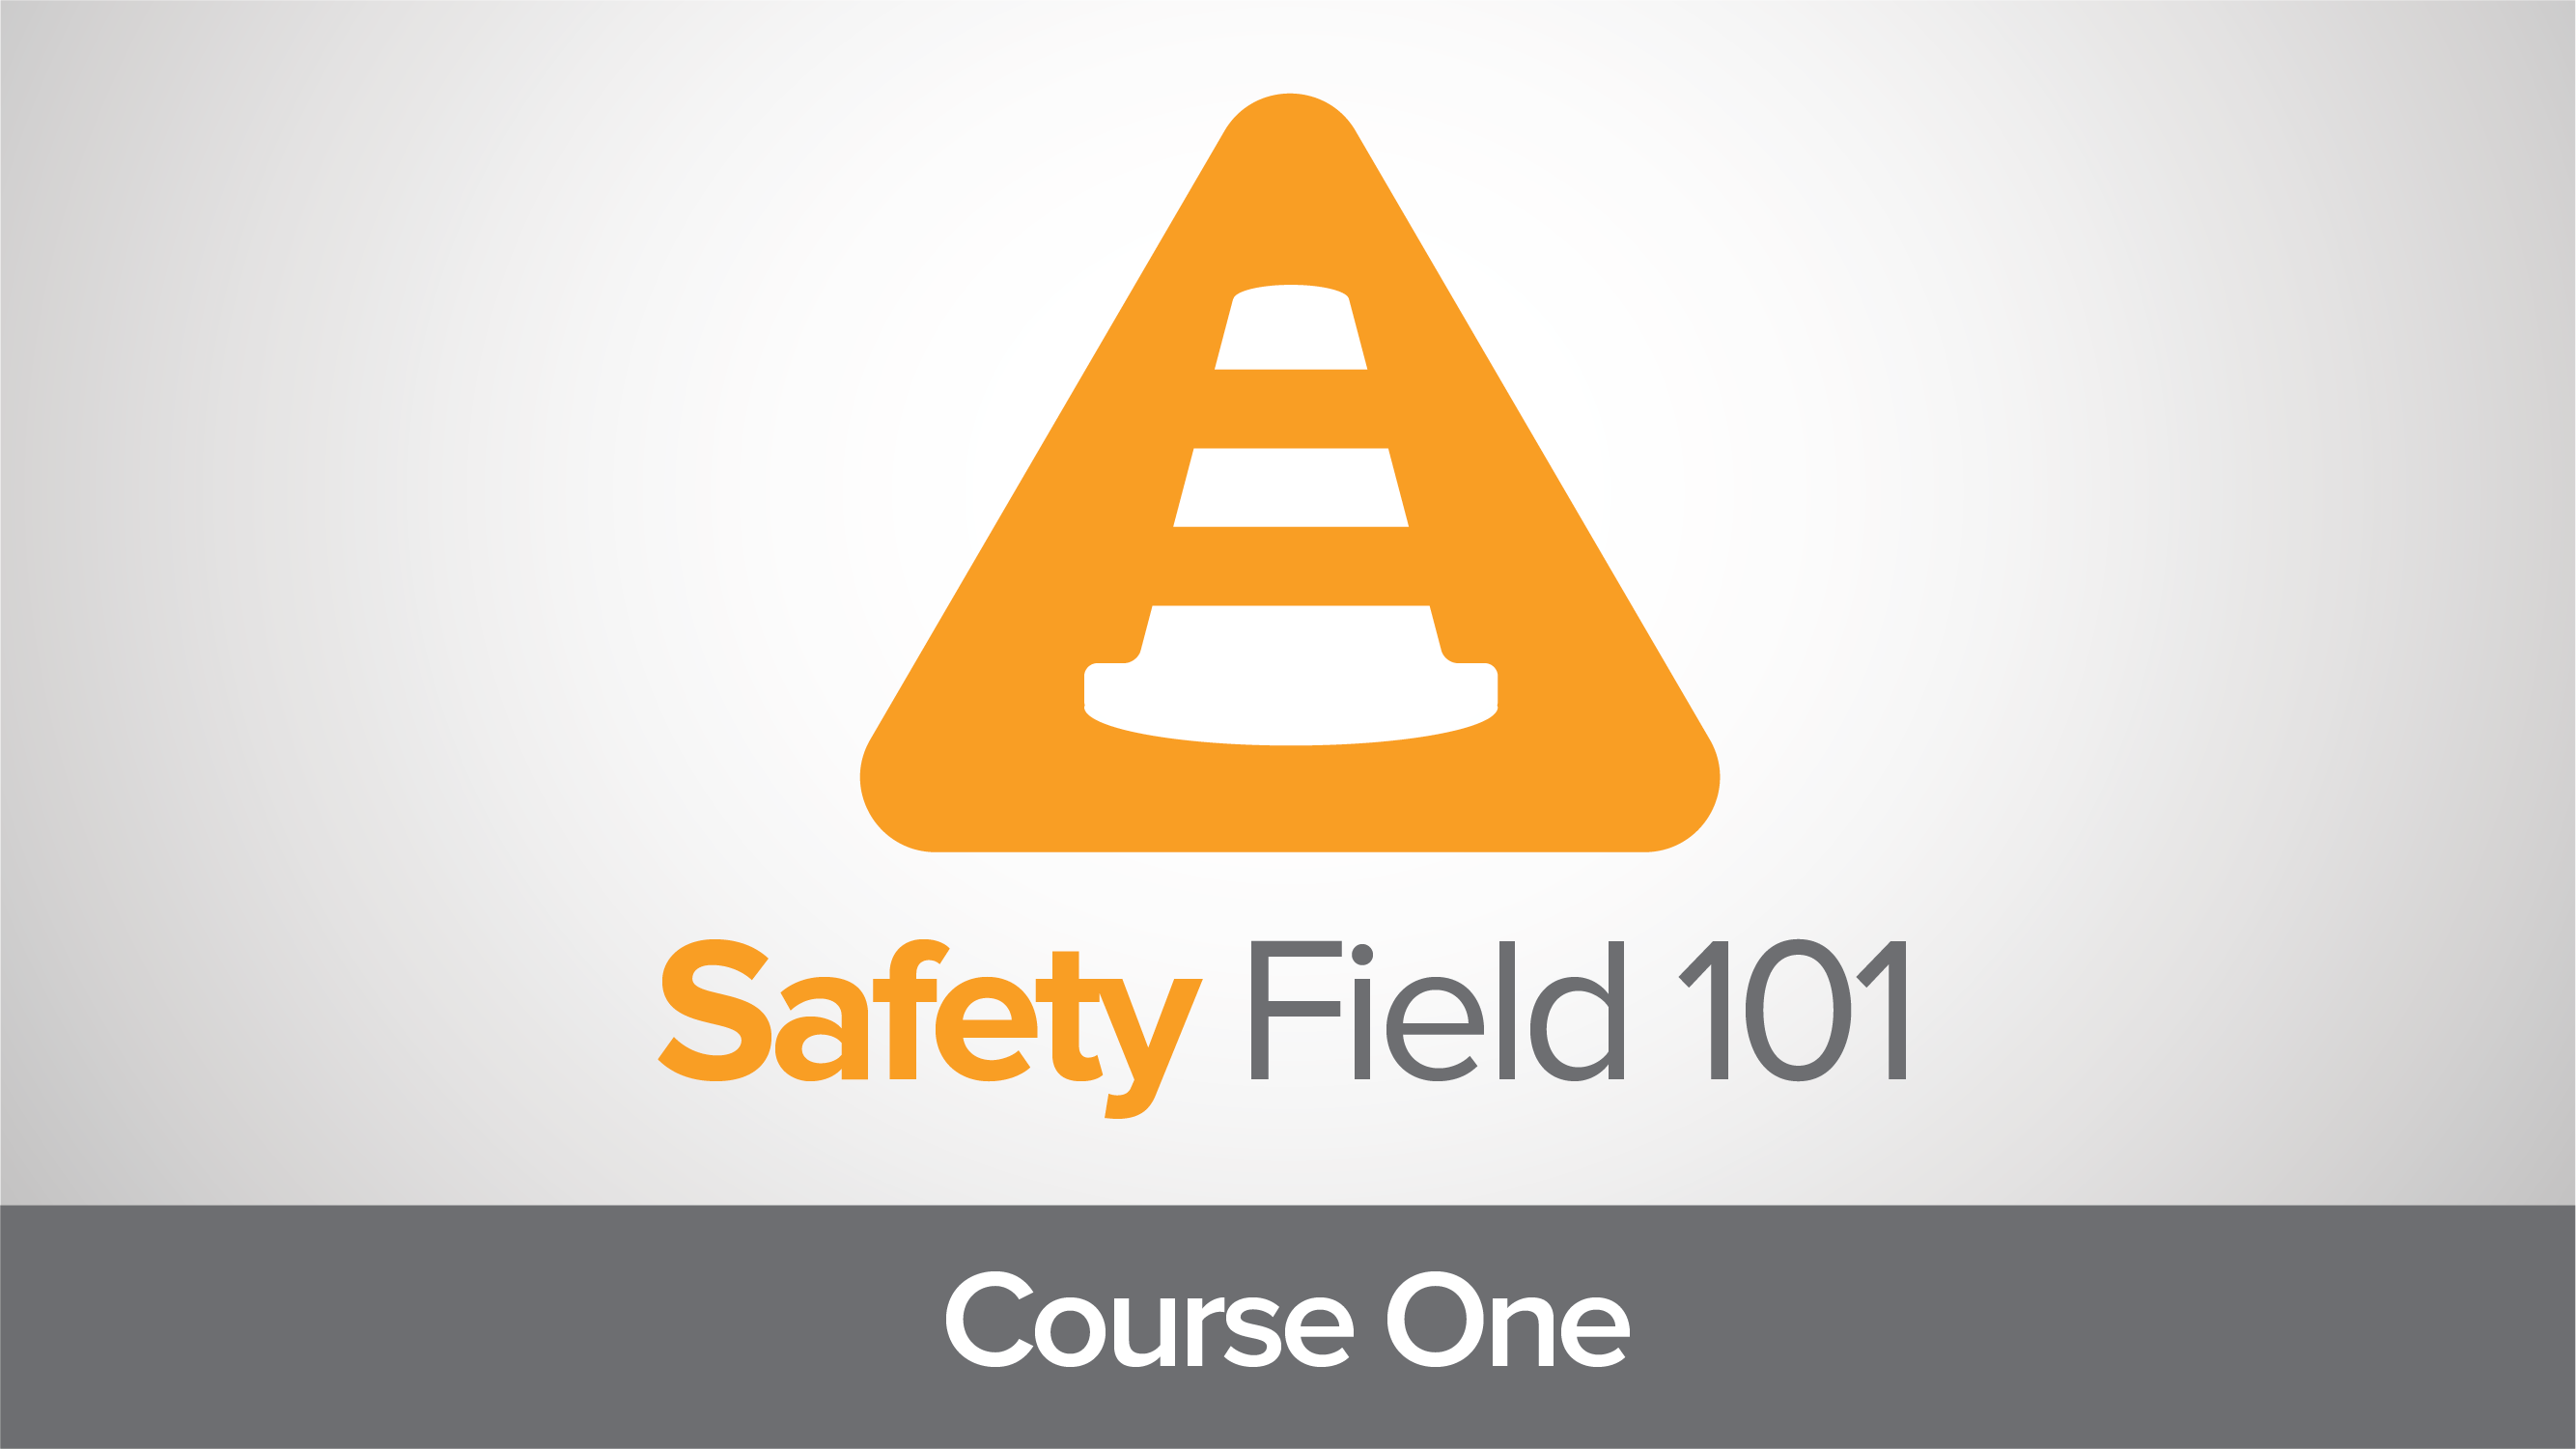 Safety Field 101: Introduction to Safety